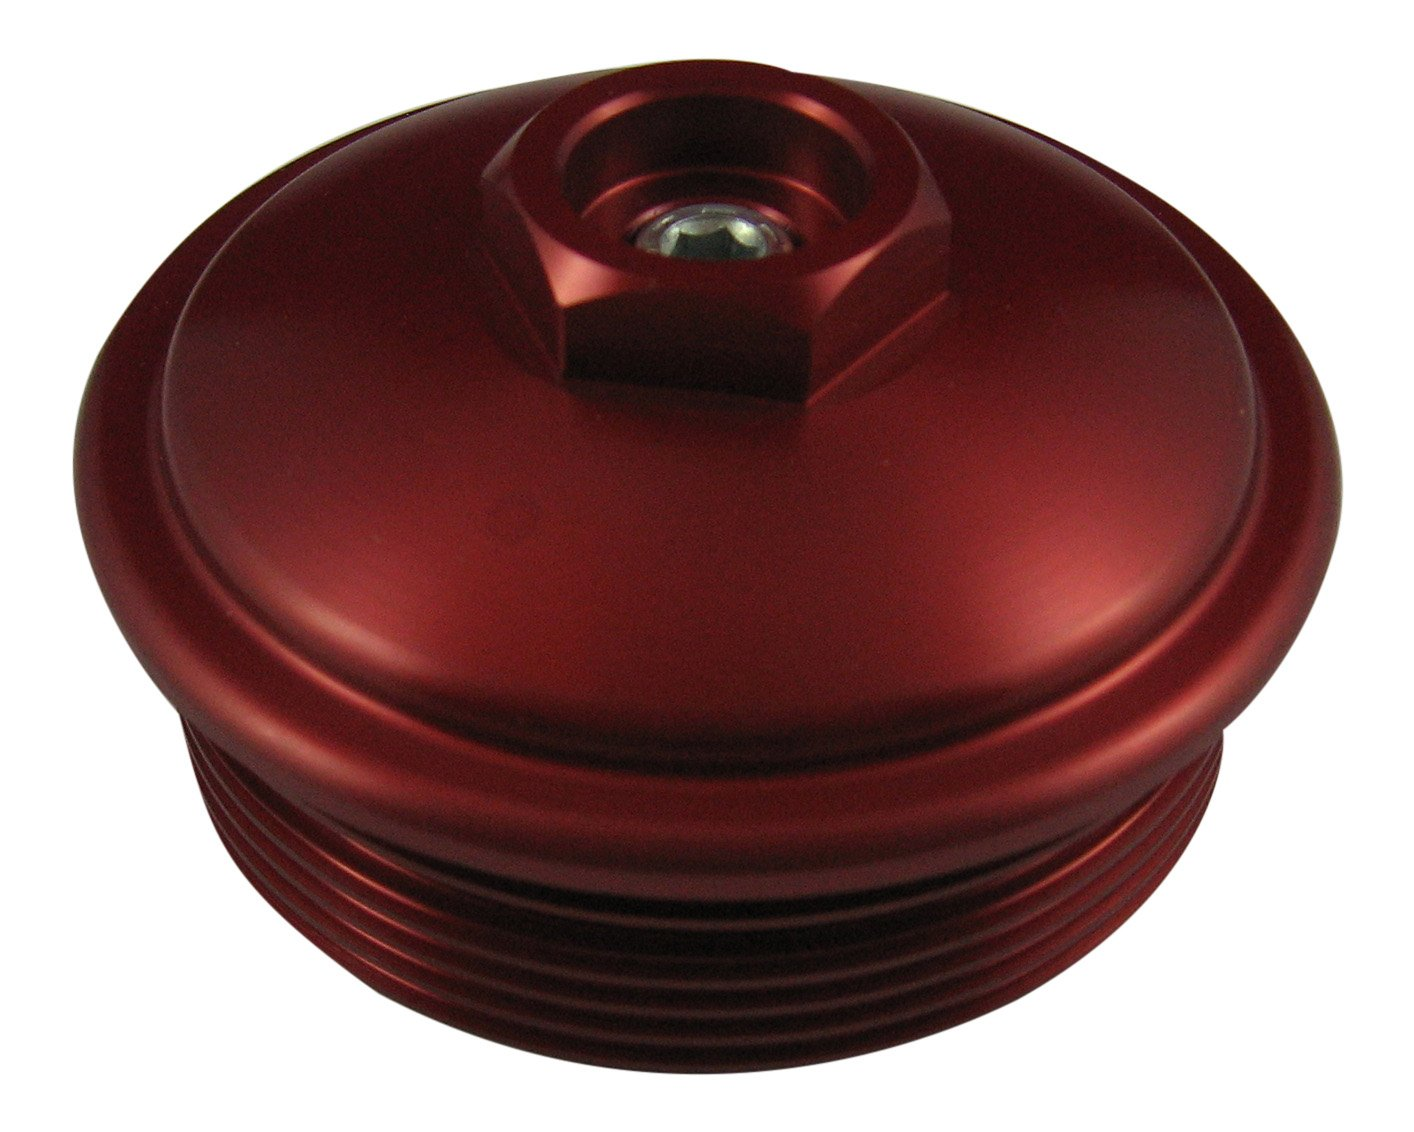 Delicate Accuratediesel 60l Powerstroke Red Billet Aluminum Fuel Filter Cap With Pressure Test Port